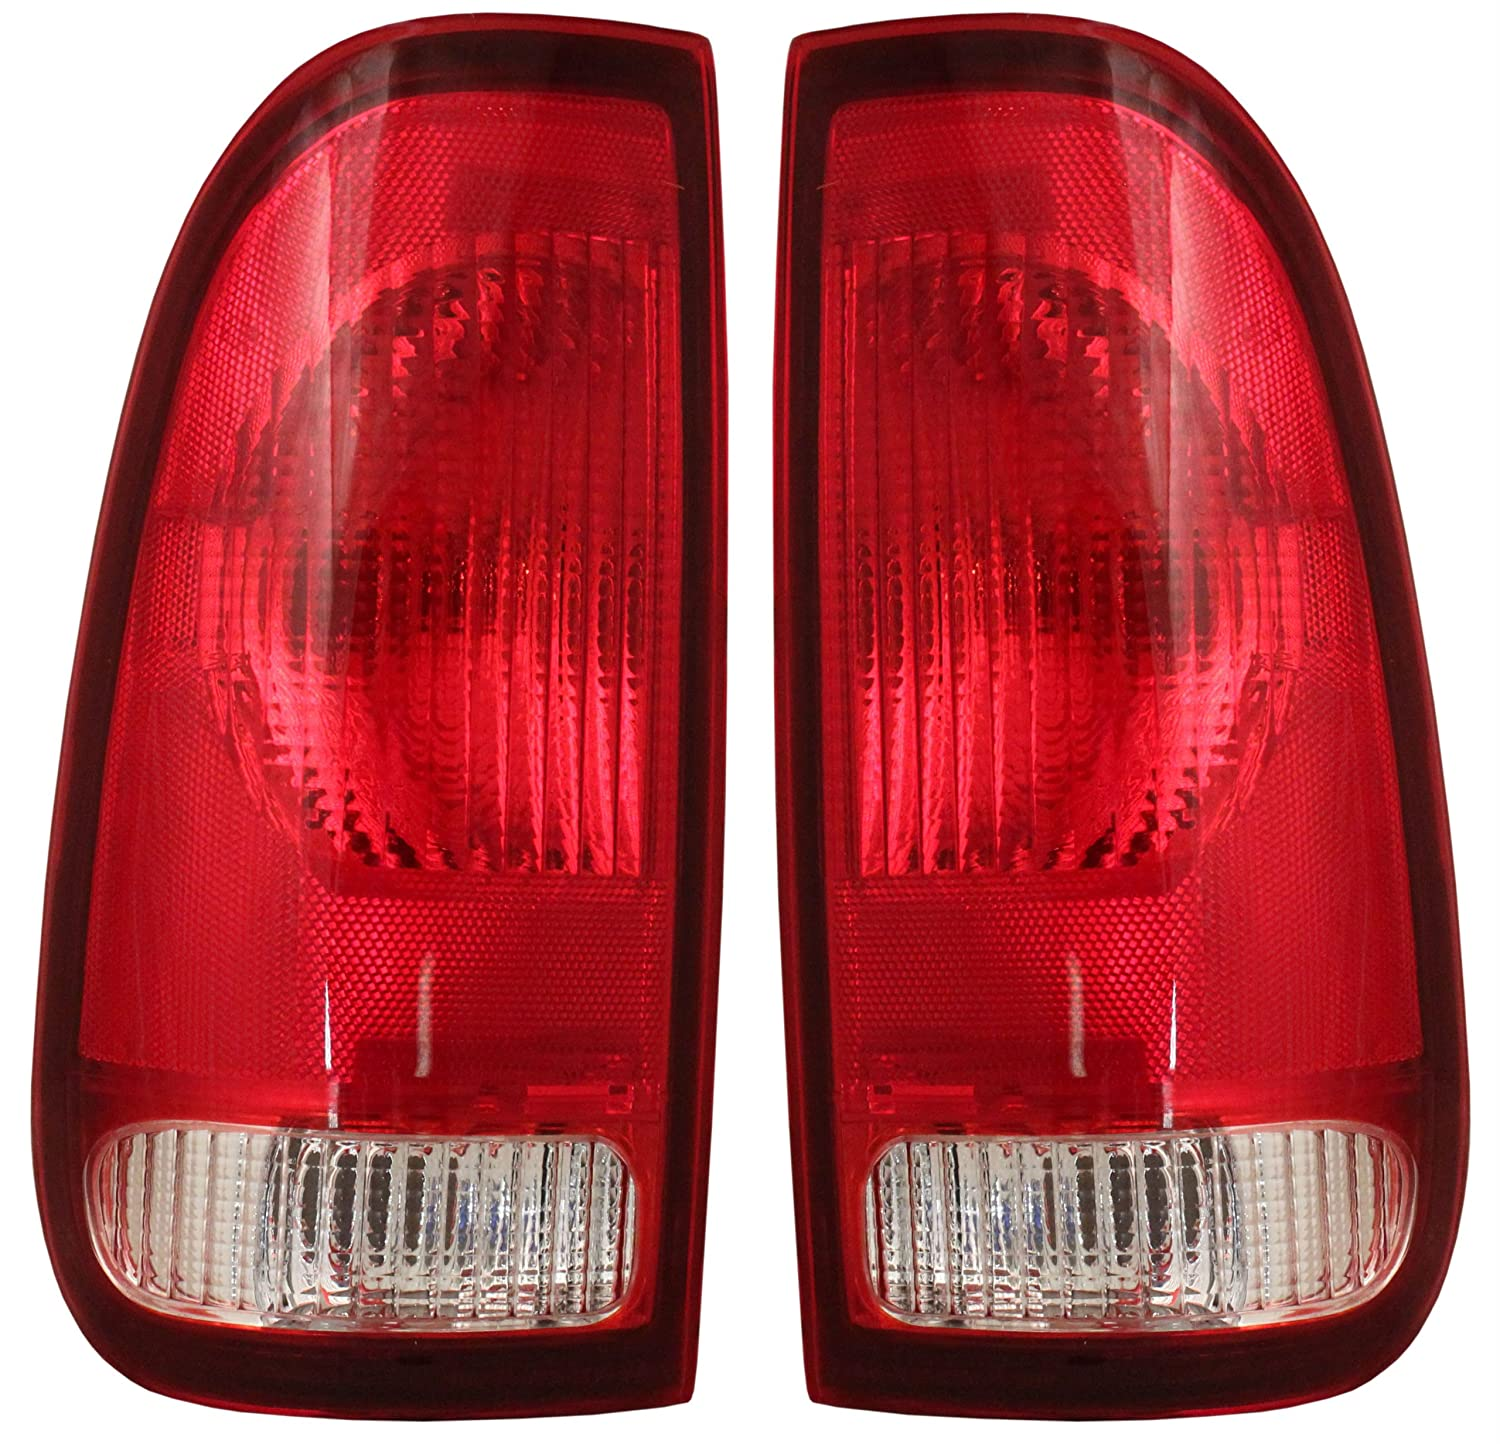 EAGLE EYES PAIR SET RIGHT & LEFT REAR/BACK TAIL LIGHTS TAILLIGHTS TAIL LAMPS ...